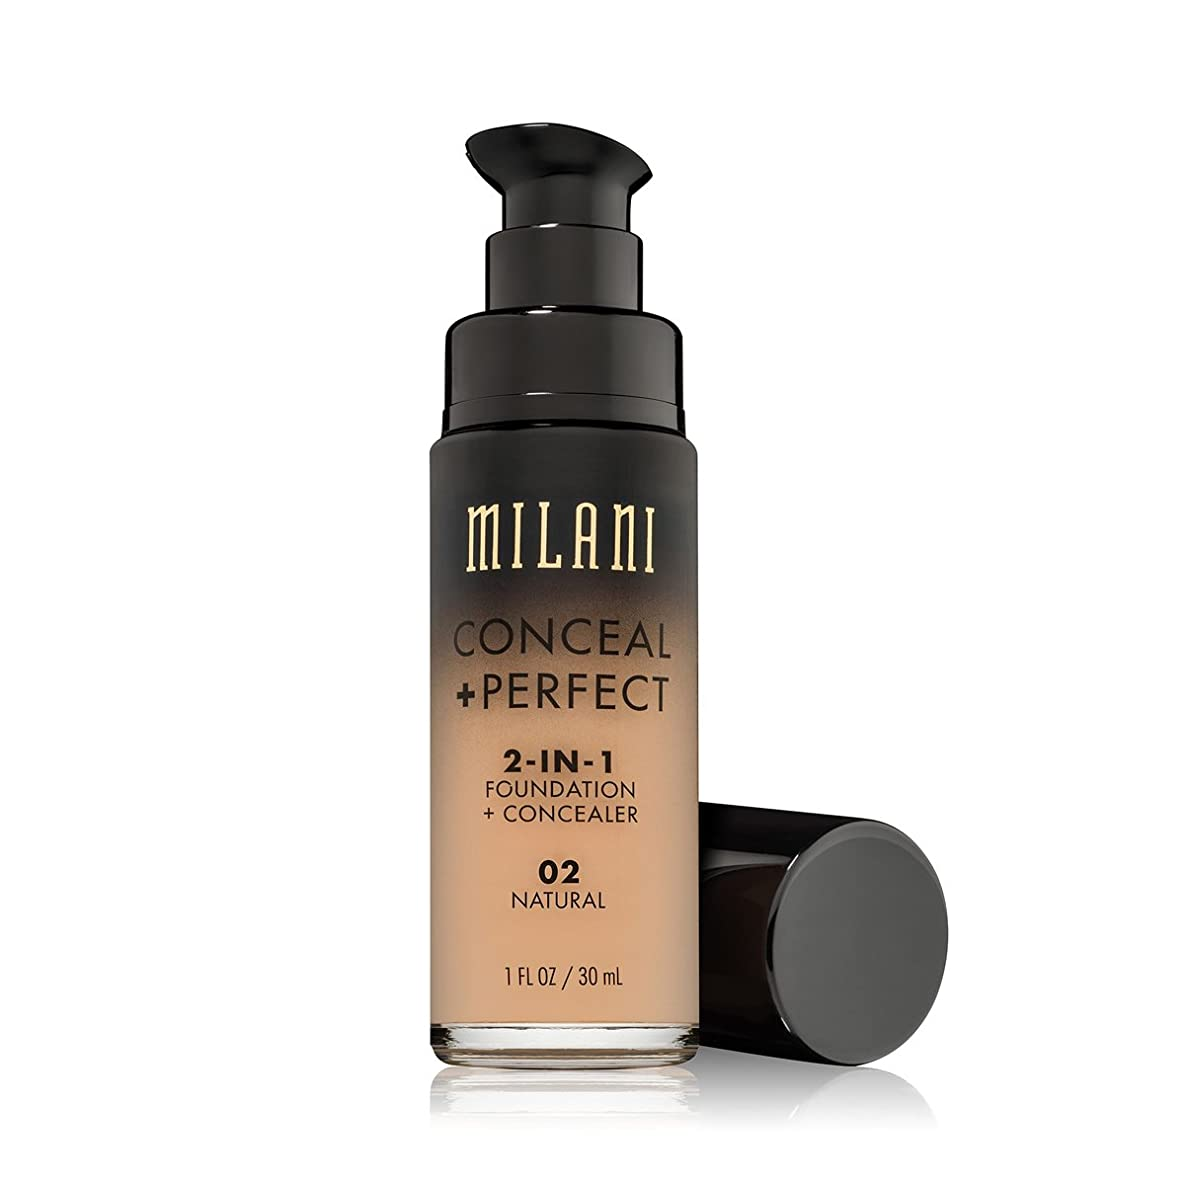 準拠キャンドル供給MILANI Conceal + Perfect 2-In-1 Foundation + Concealer - Natural (並行輸入品)